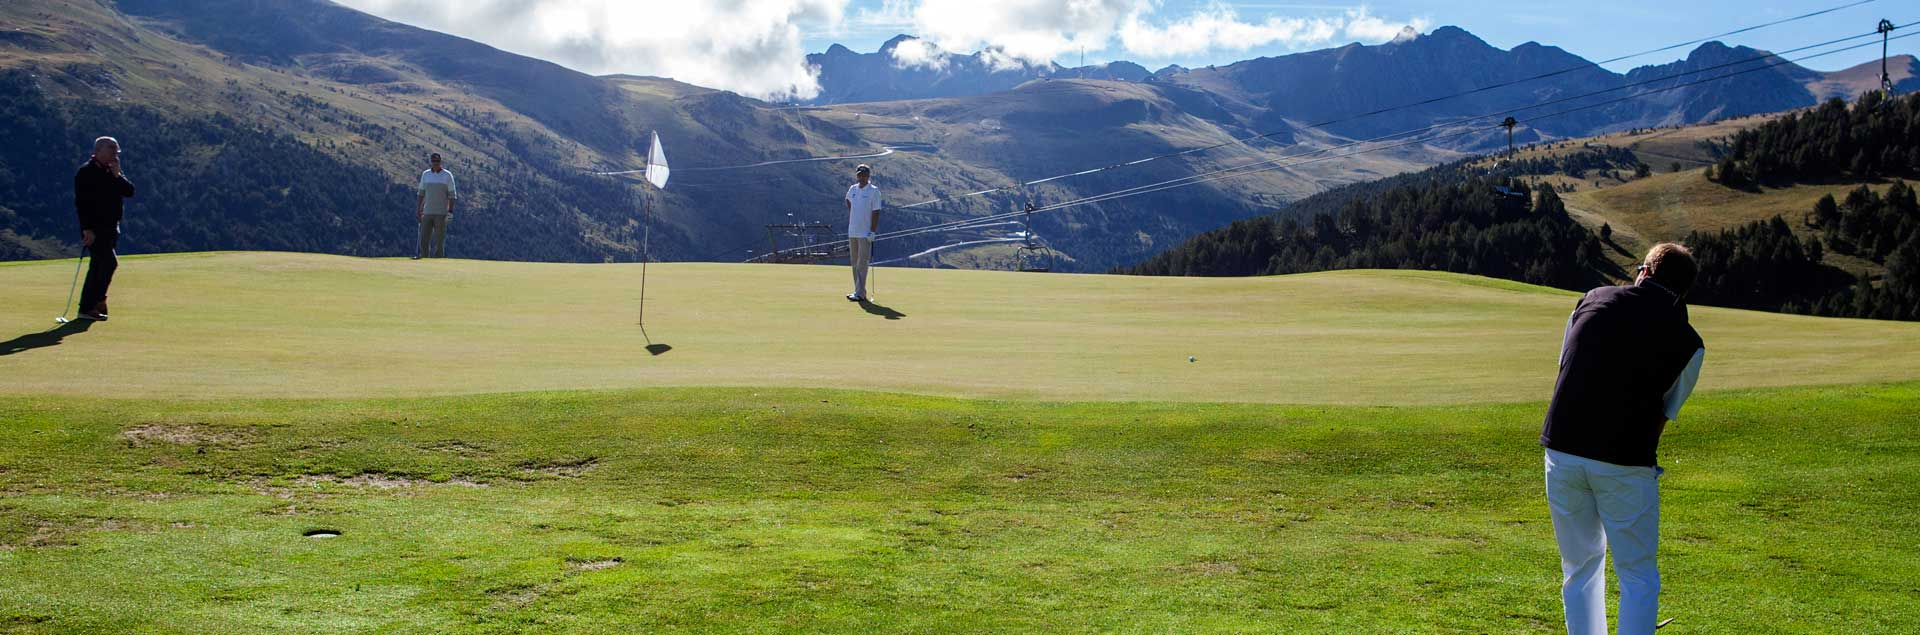 golf court in summer in Andorra